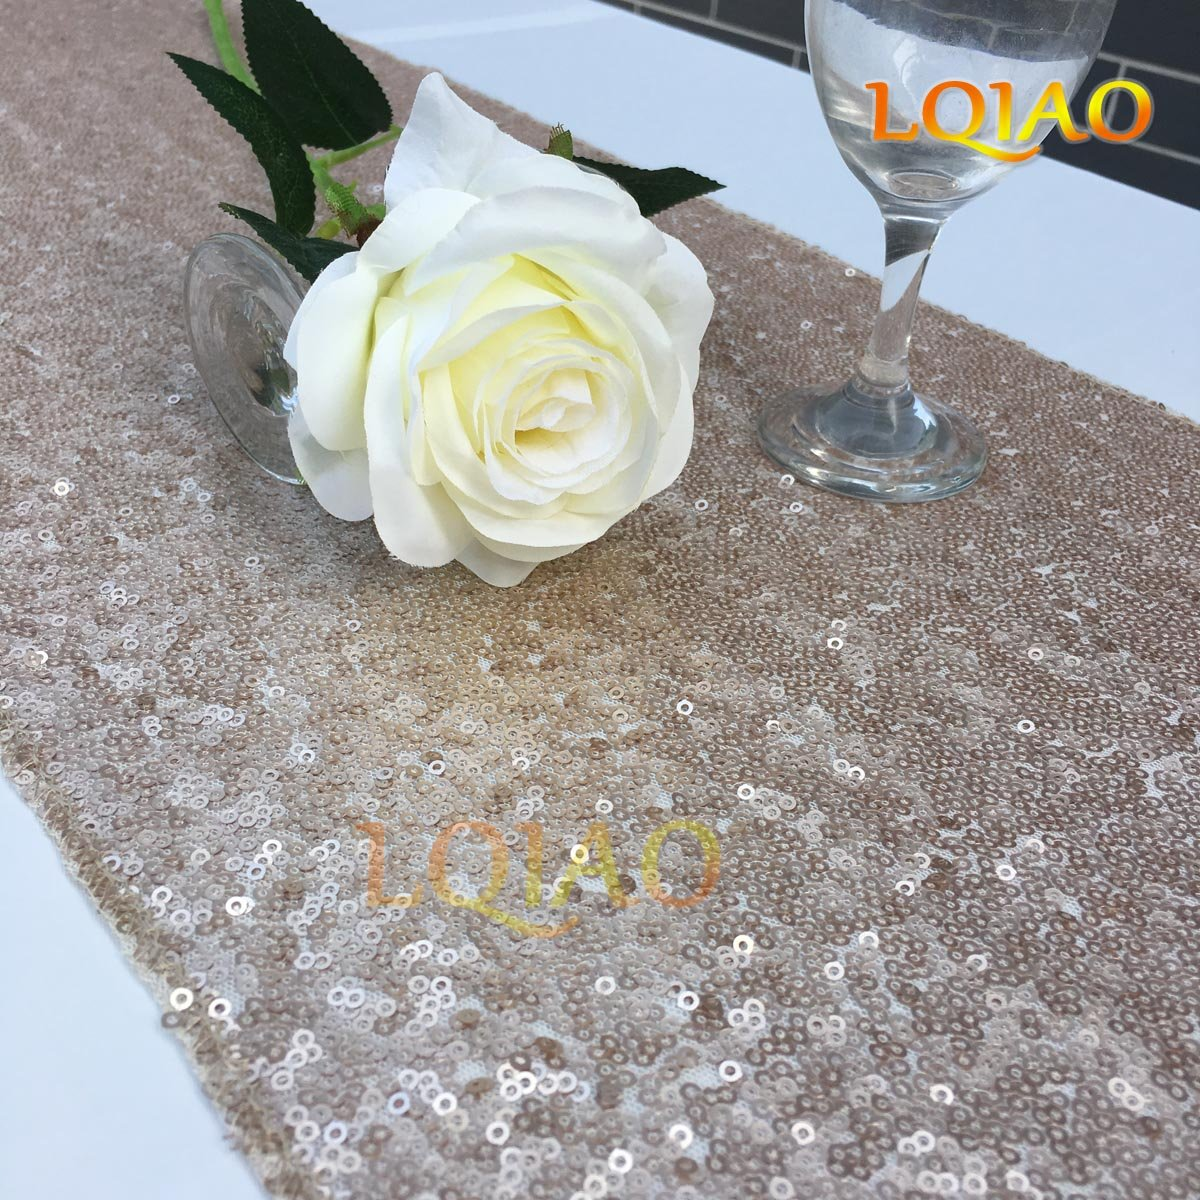 LQIAO Christmas Table Runner Sequin 12x108-in, Champagne, Shiny Fabric Birthday/Wedding/Party Decoration(wholesale Possible), Pack of 20 PCS